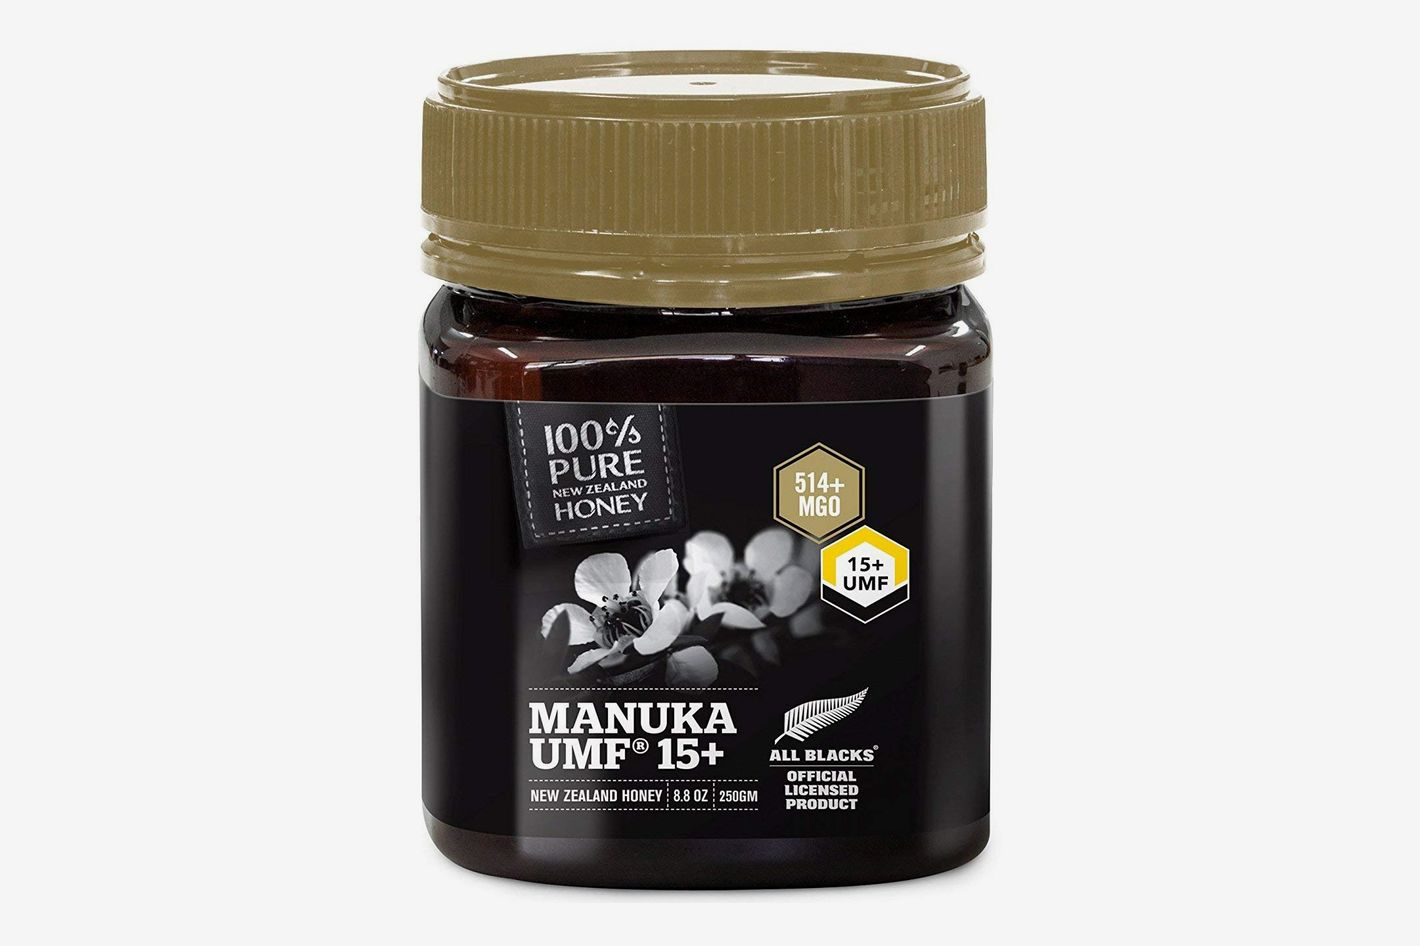 Pure New Zealand Certified UMF 15+ Manuka Honey